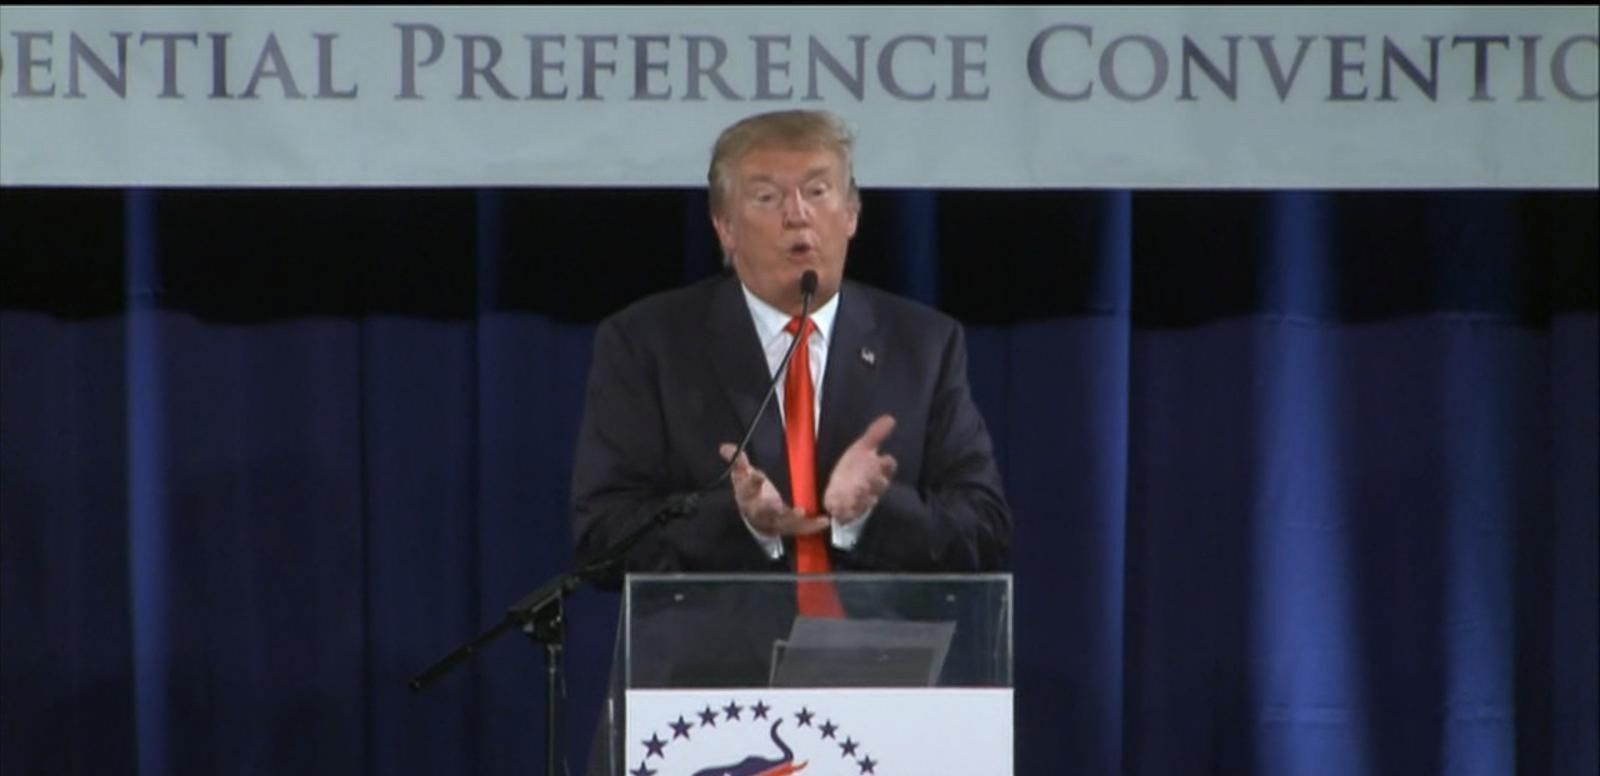 VIDEO: Donald Trump Promises Third-Party Run Decision